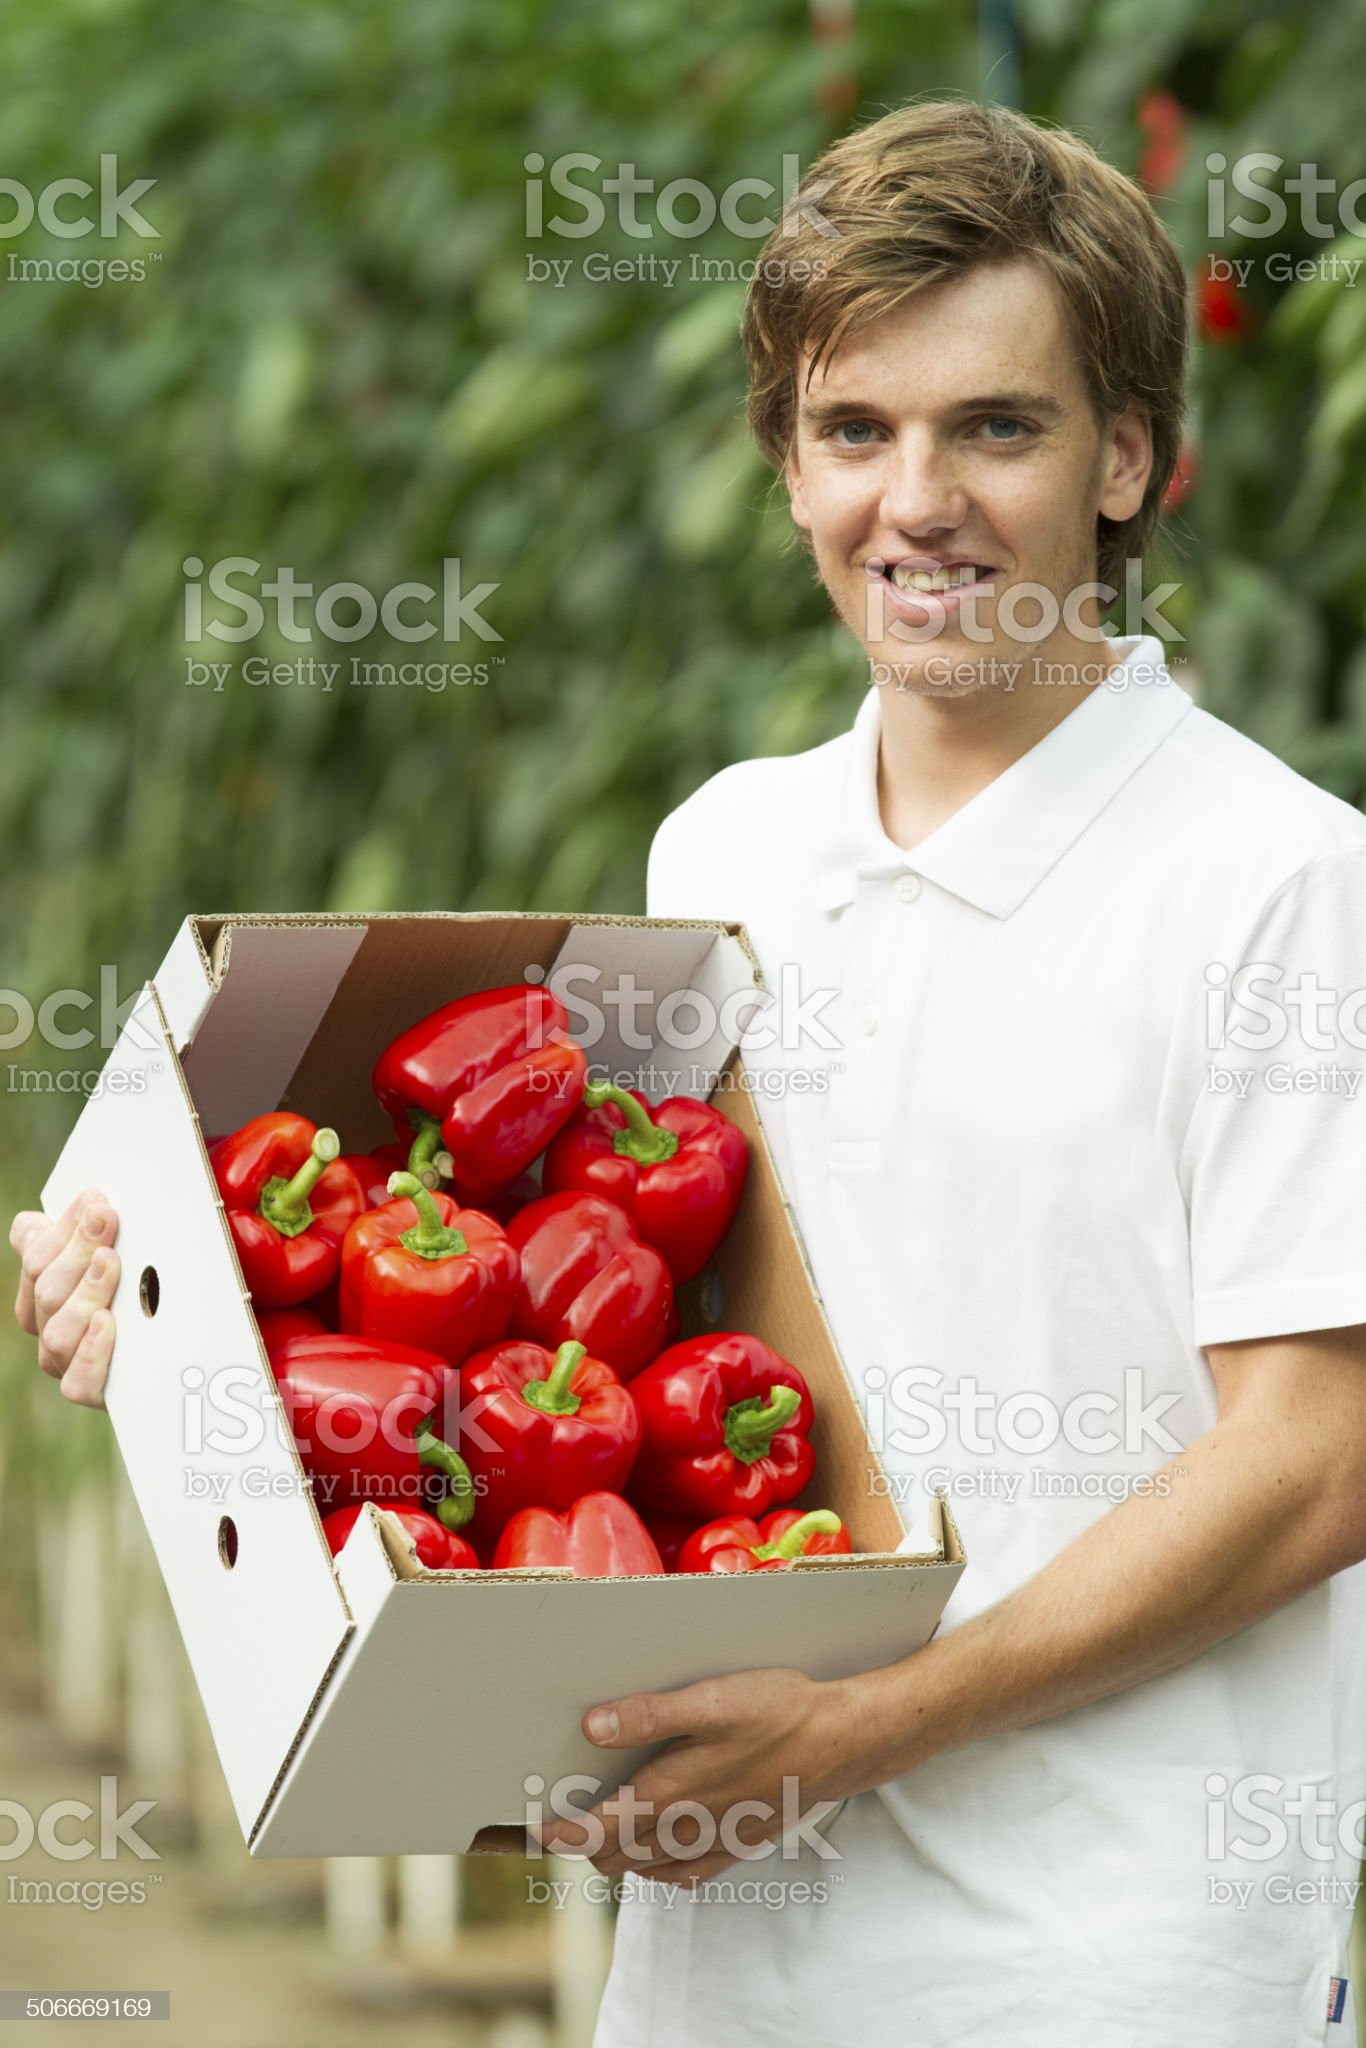 Working in a glasshouse, showing organic food royalty-free stock photo